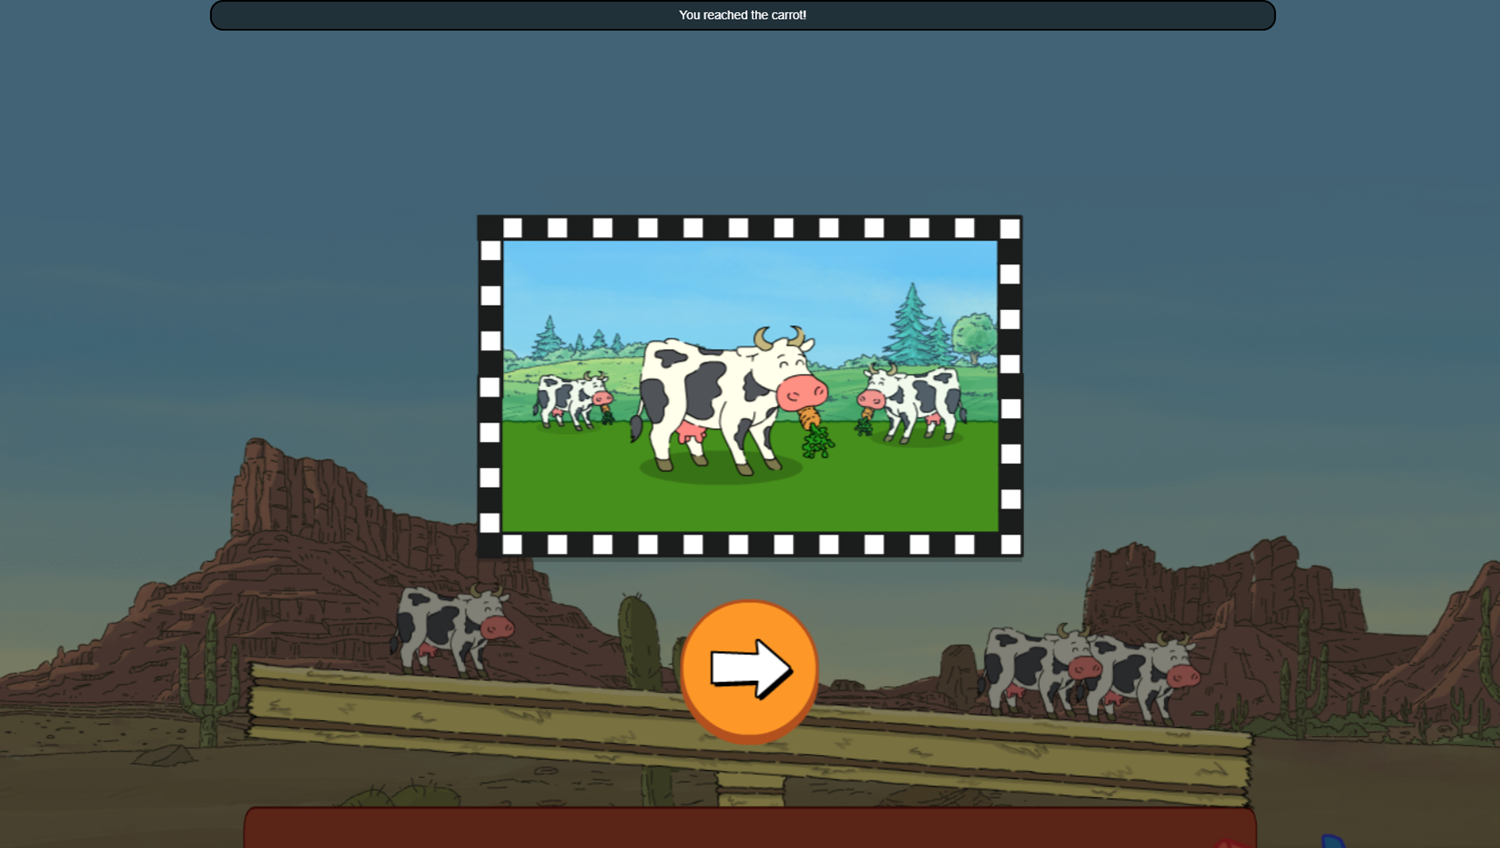 Arthur Tower of Cows Game Tip Level Complete Screenshot.